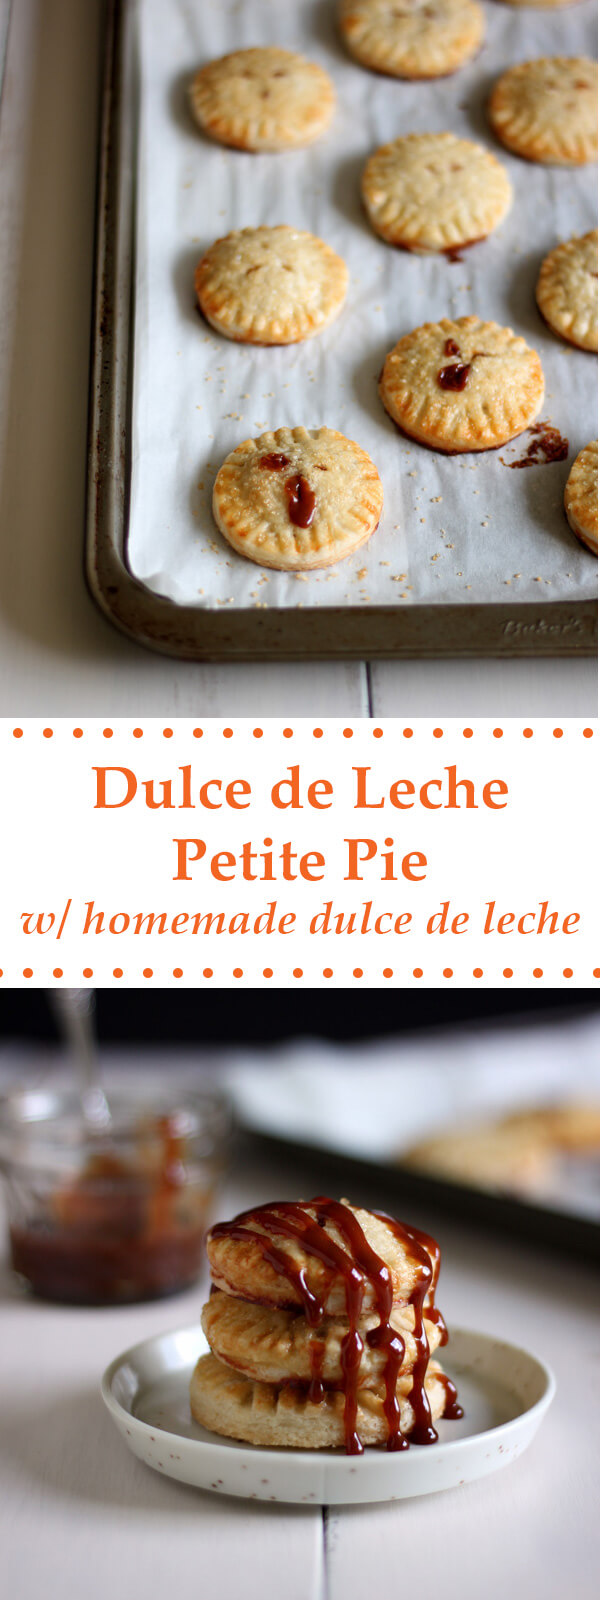 Cute little cookie like Dulce de Leche Petite Pie made with flaky buttery crust and oozing with homemade Dulce de Leche goodness! | wildwildwhisk.com